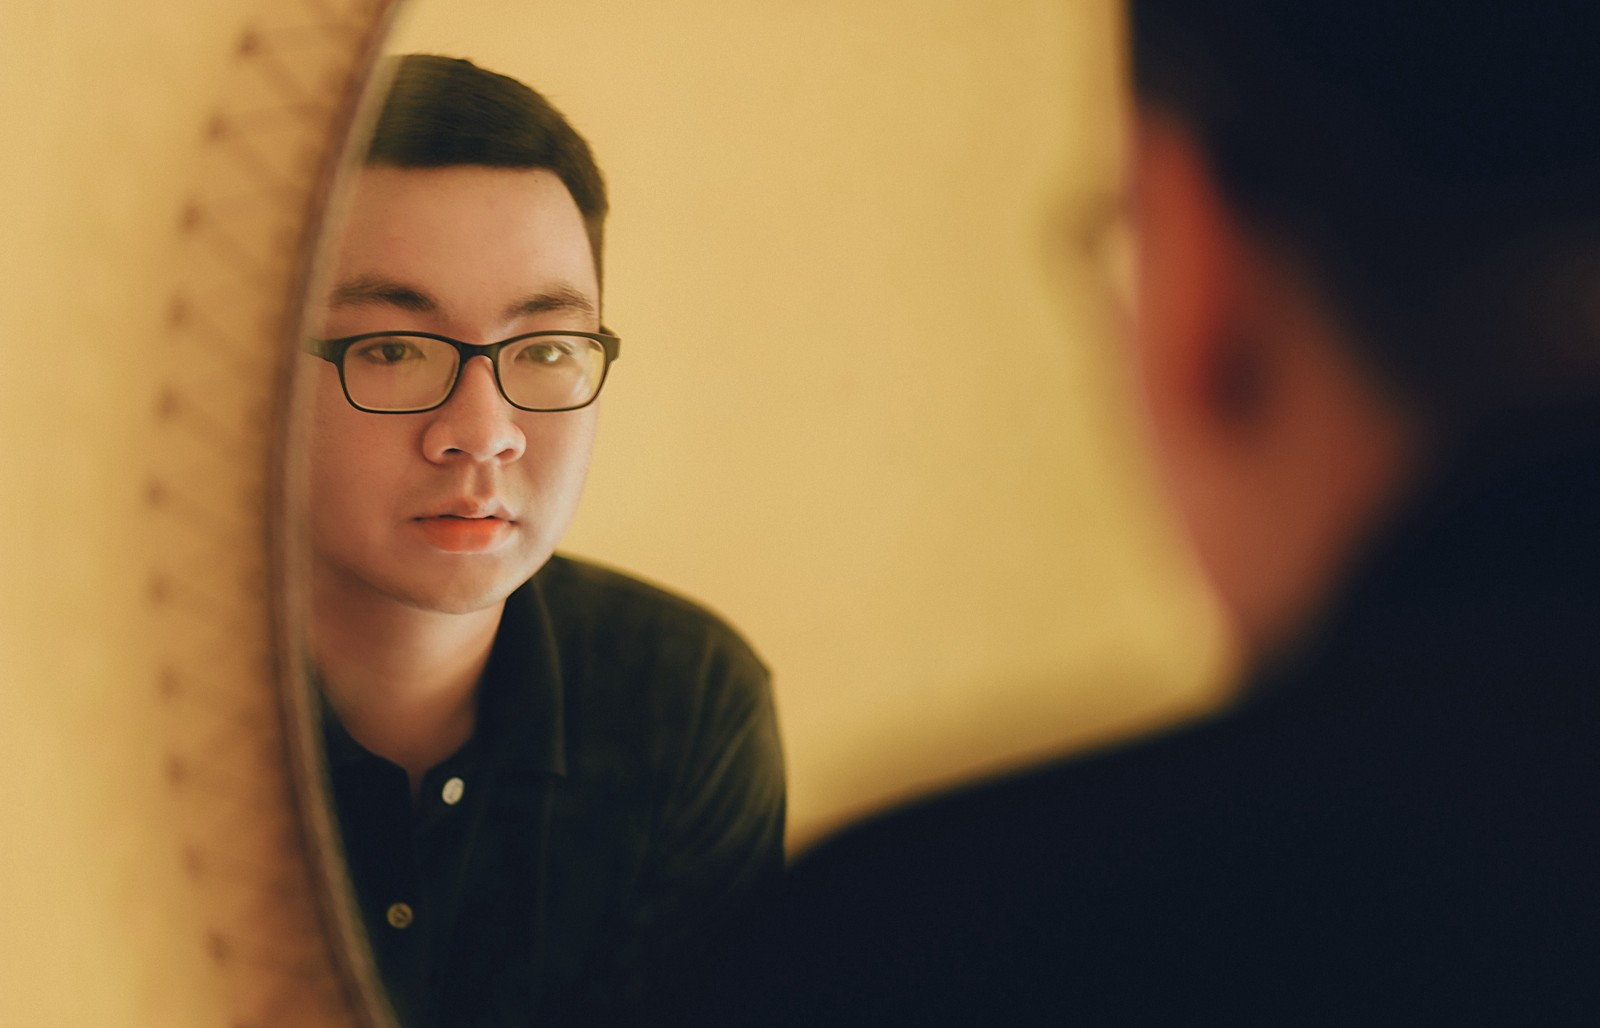 man with glasses looking on the mirror